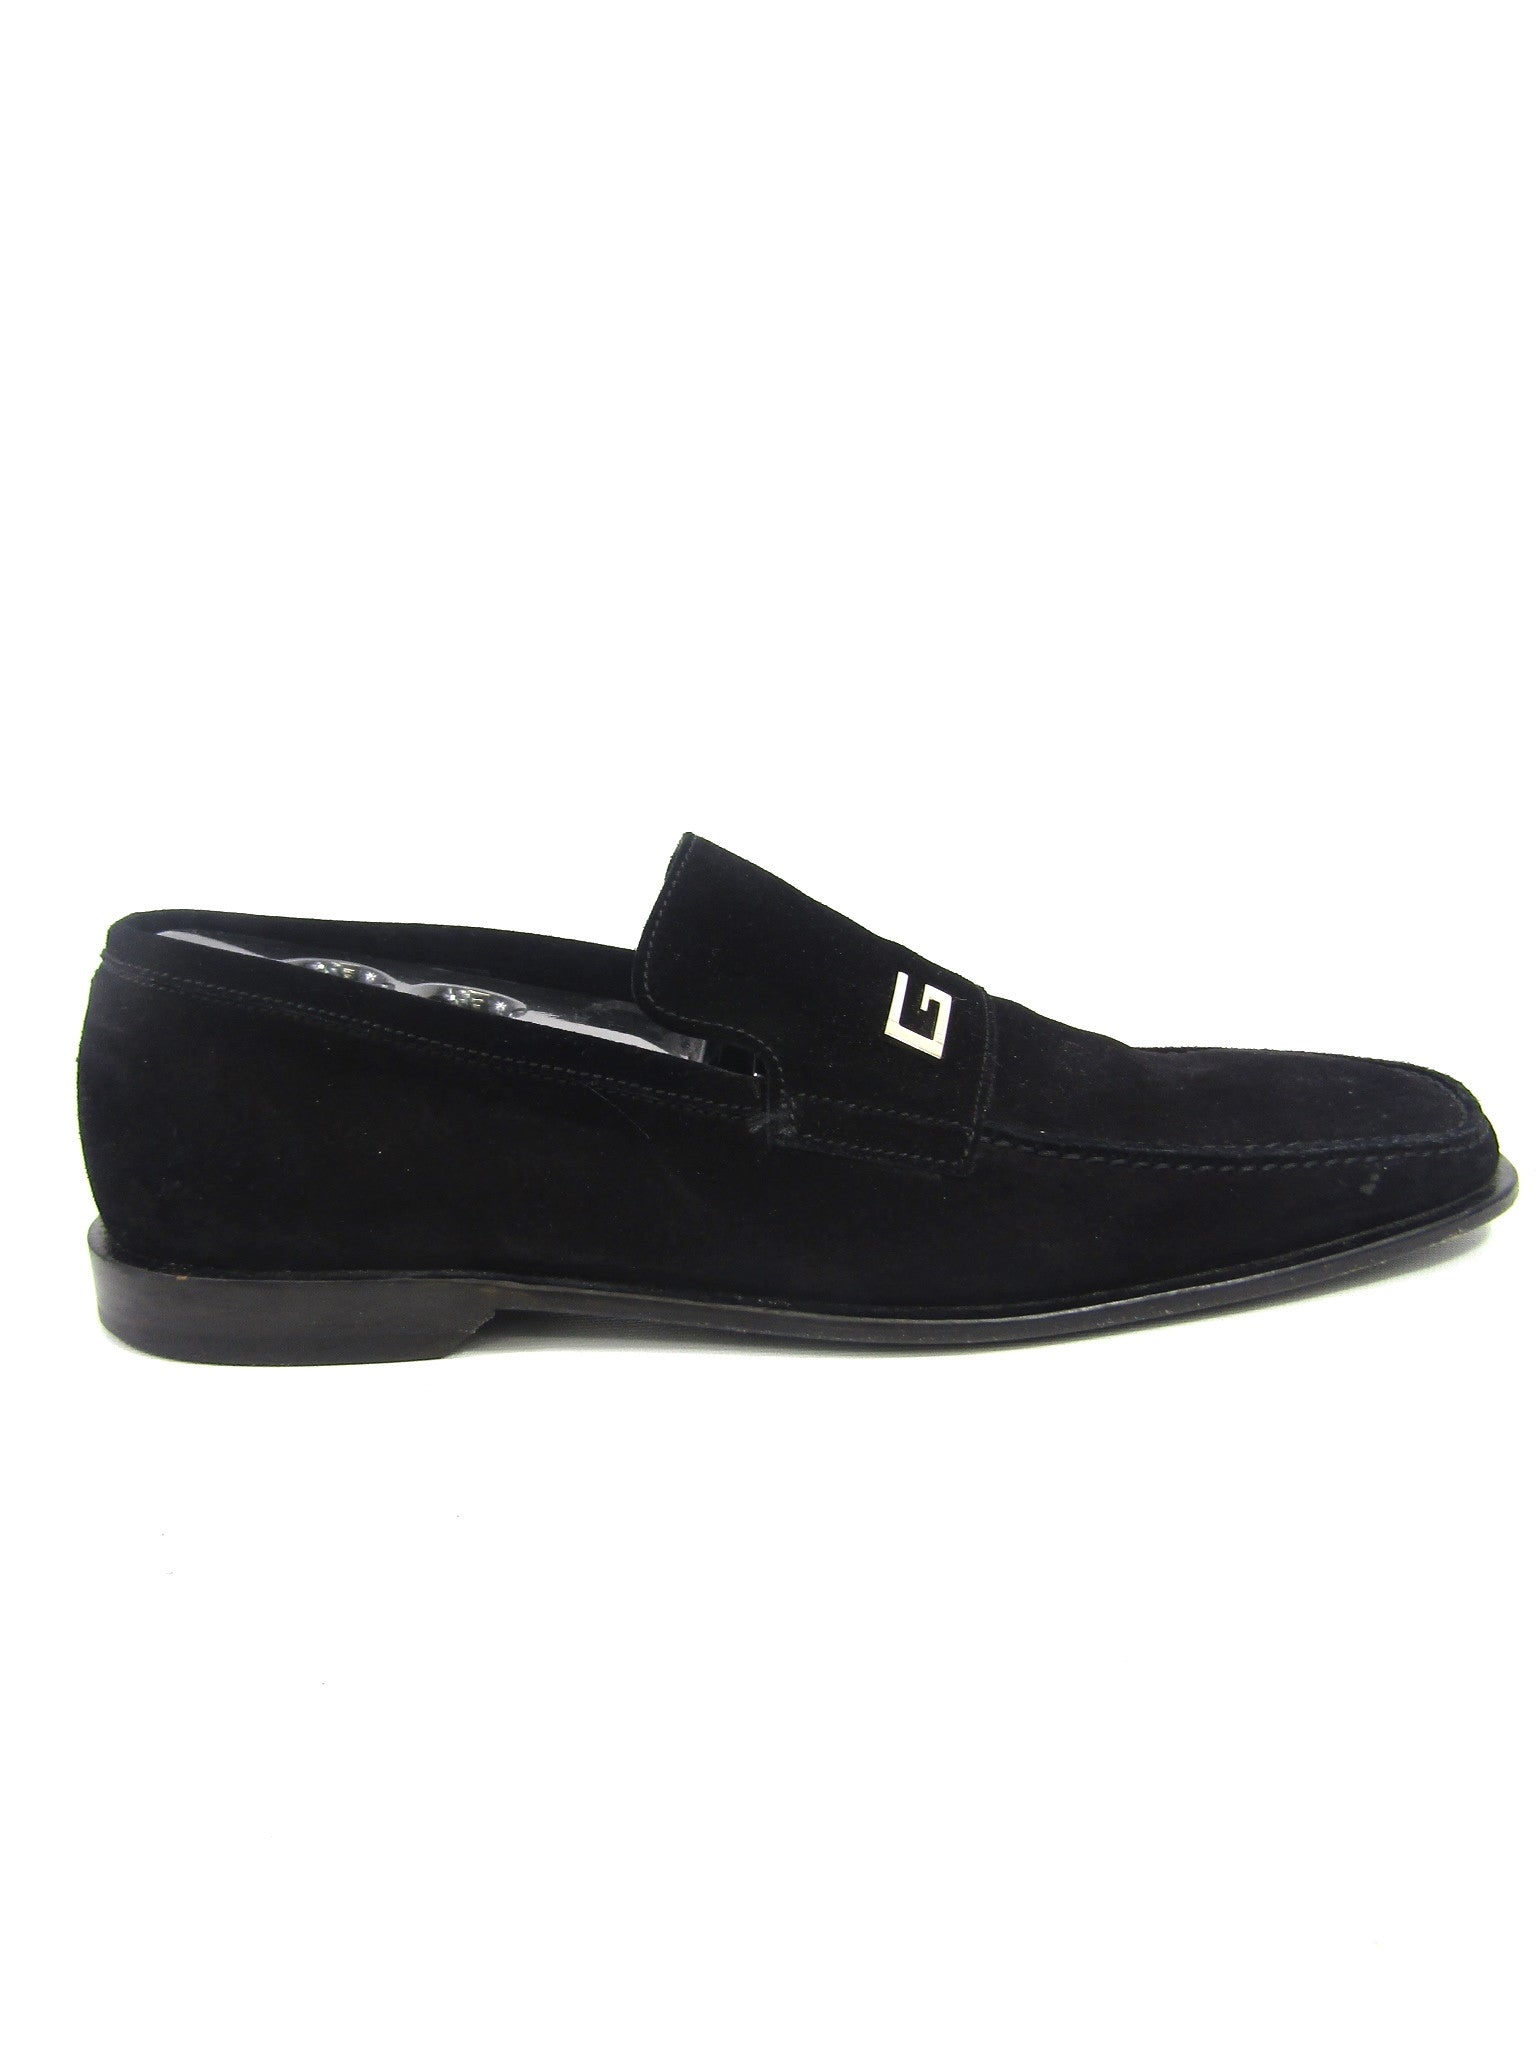 fabca0459 GUCCI Men Black Suede G Iconic Buckle Moccasin Loafers Size 10.5 D